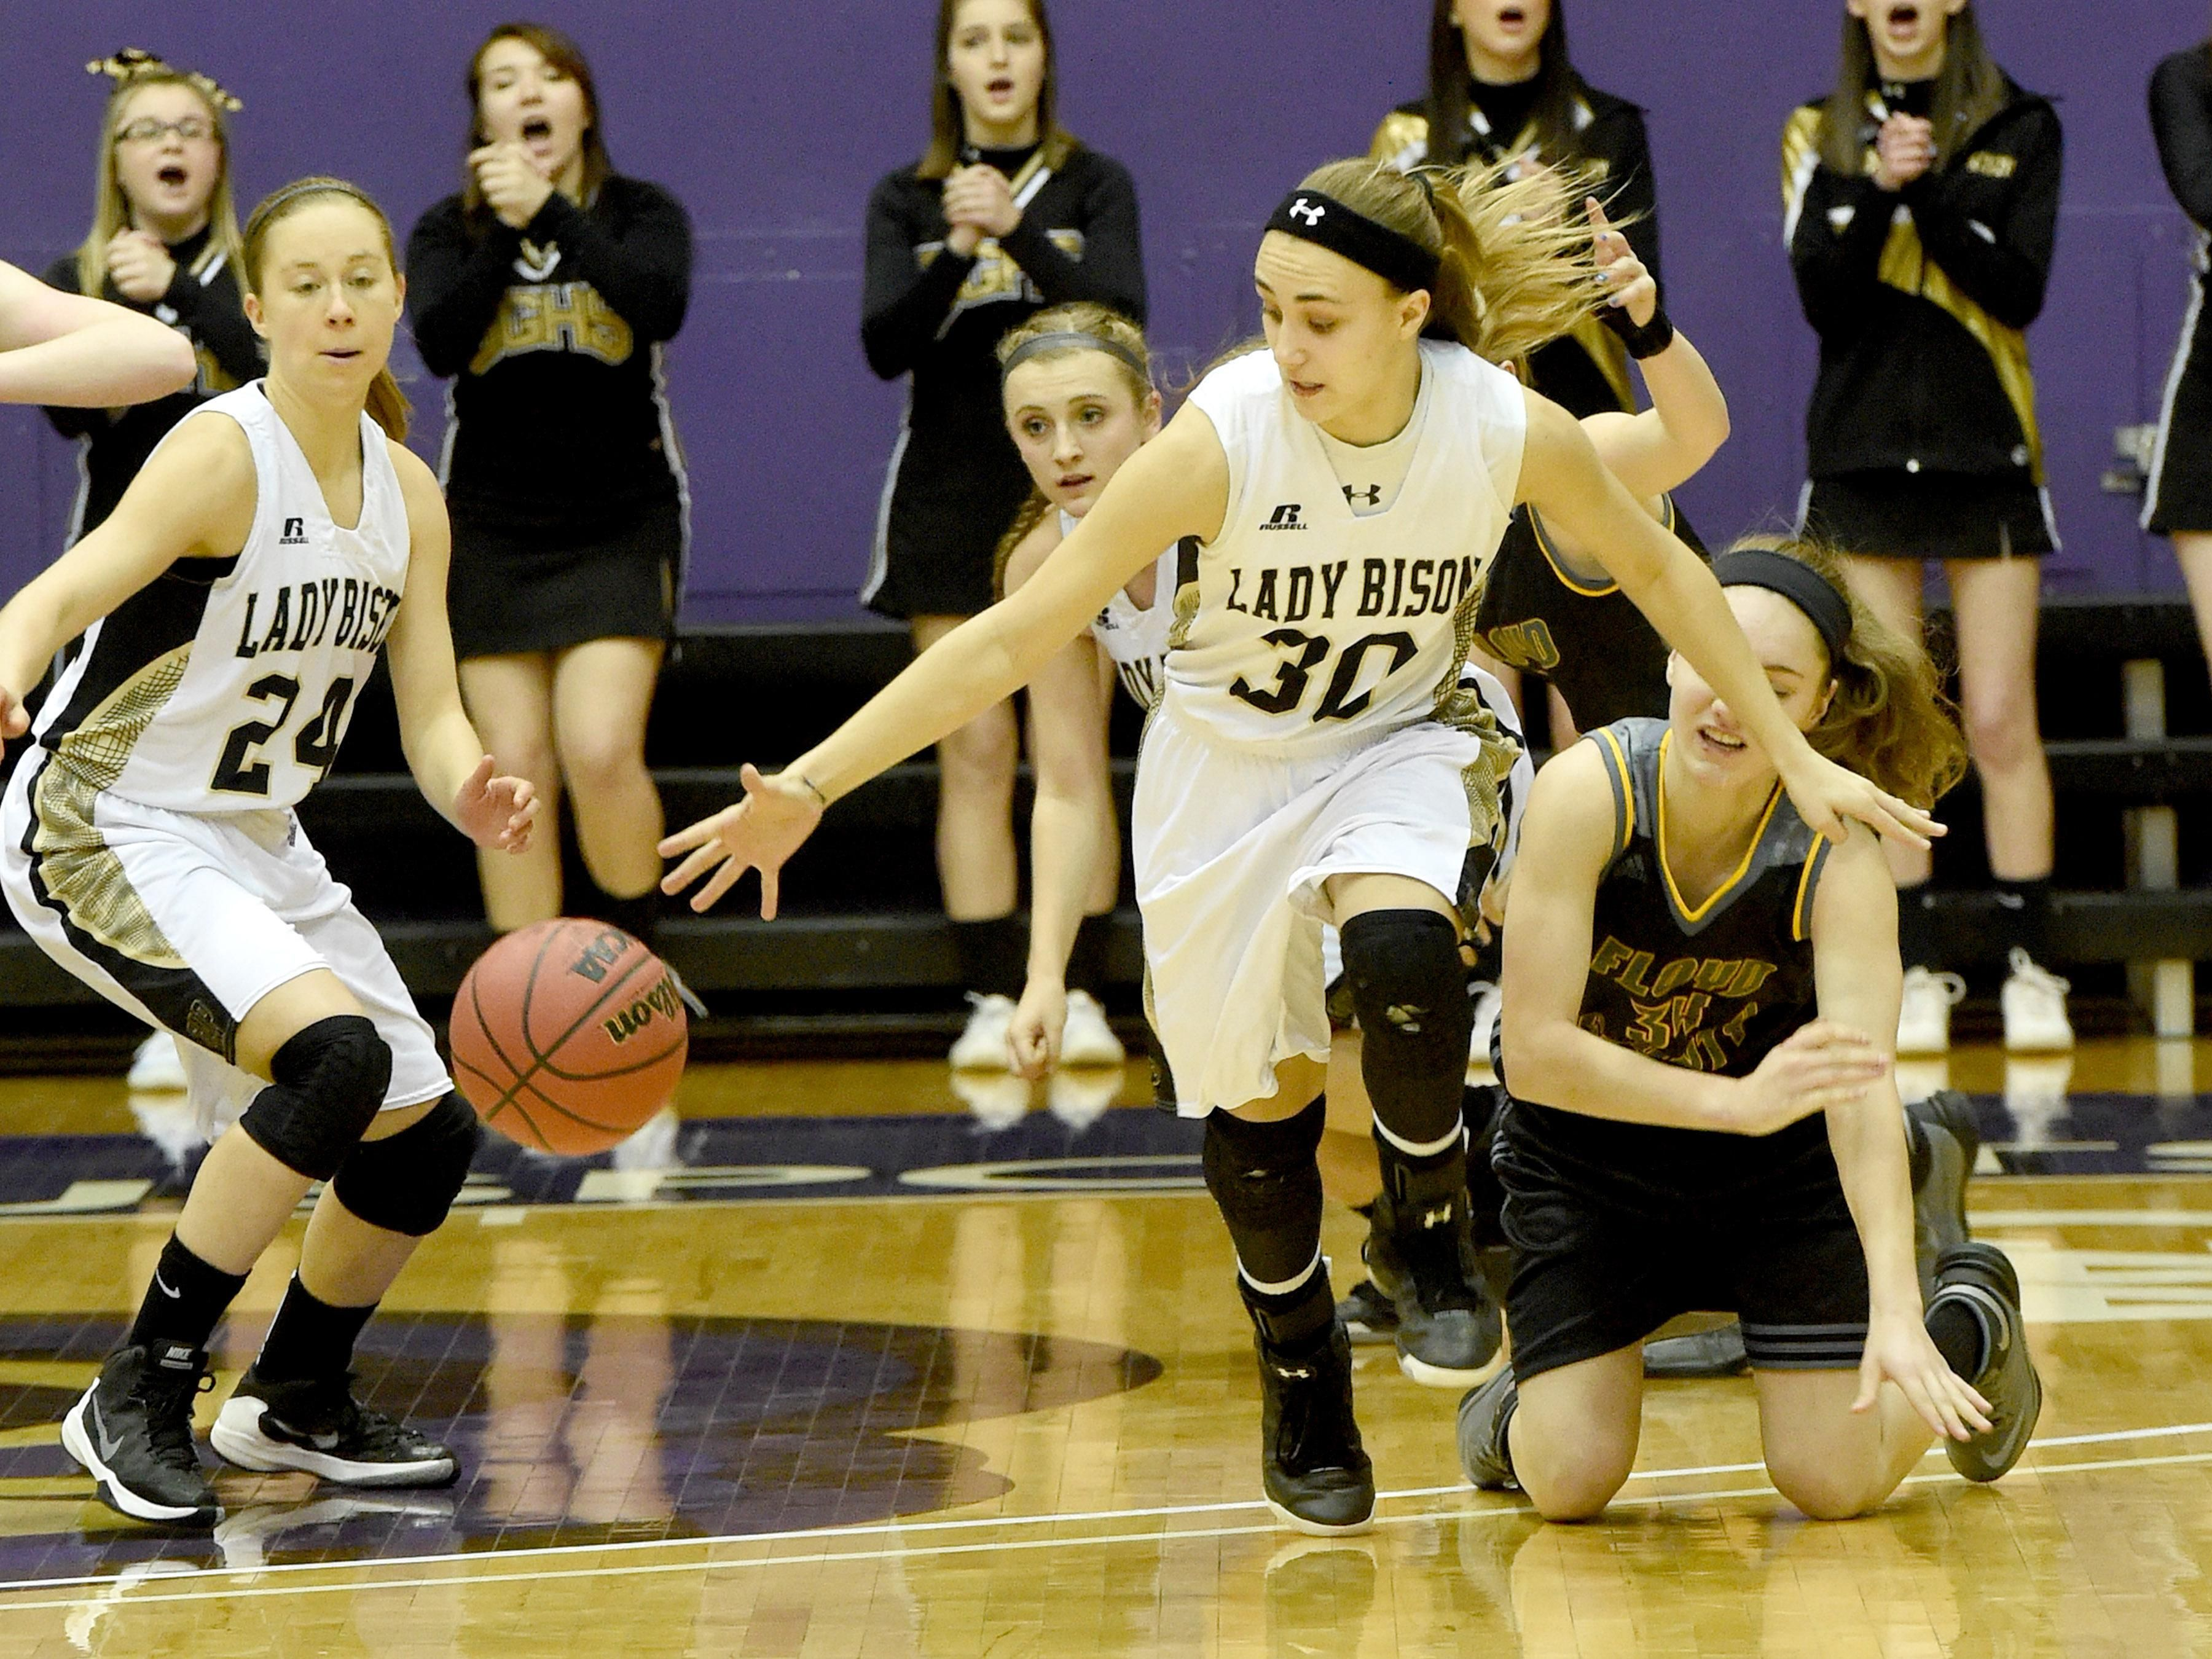 Buffalo Gap's Destiny Harper, center, the All-City/County Defensive Player of the Year, led the Bison with 124 steals and 190 rebounds.